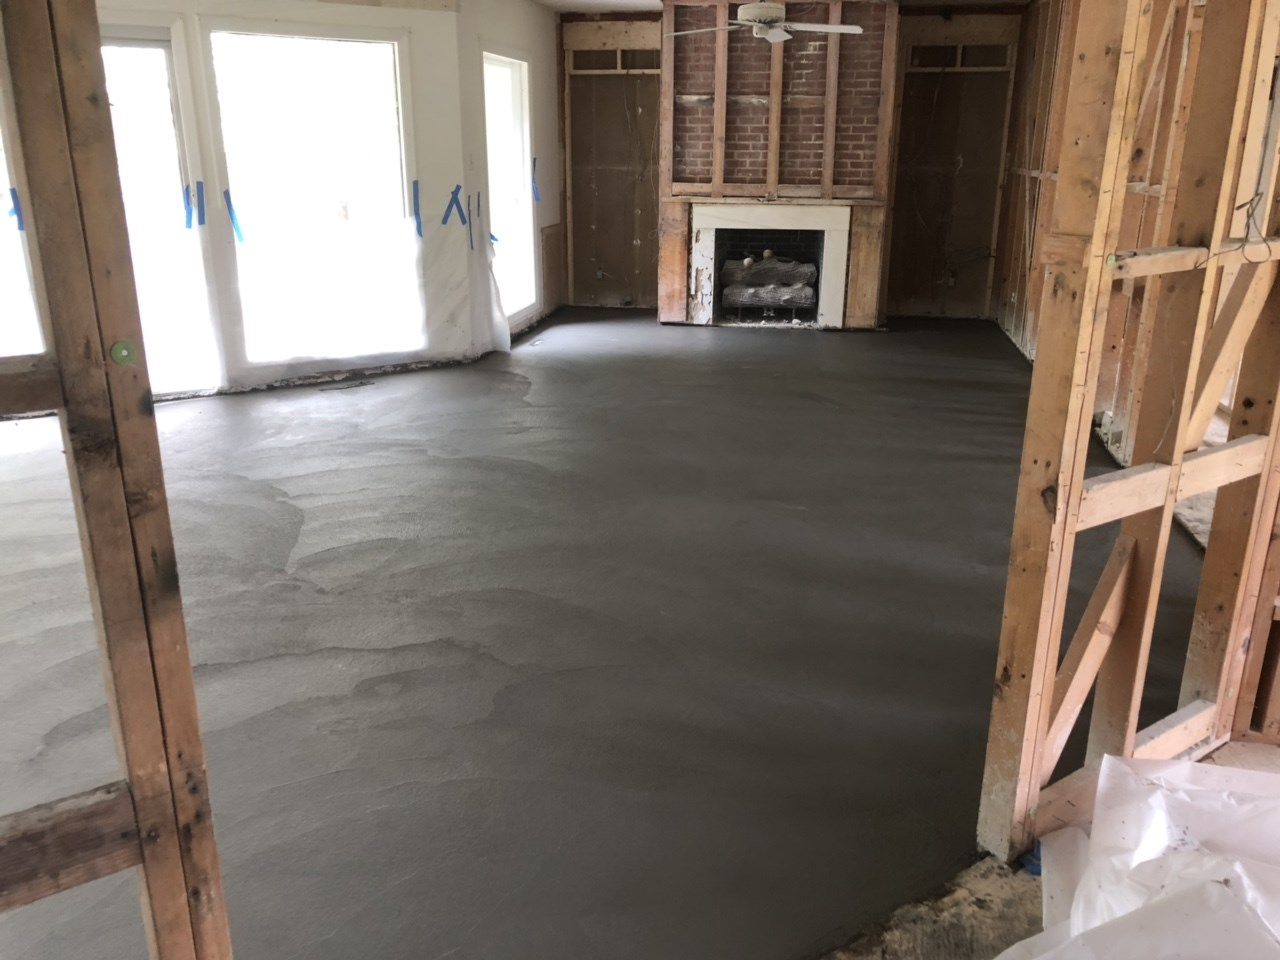 New subfloor is finished and now curing.